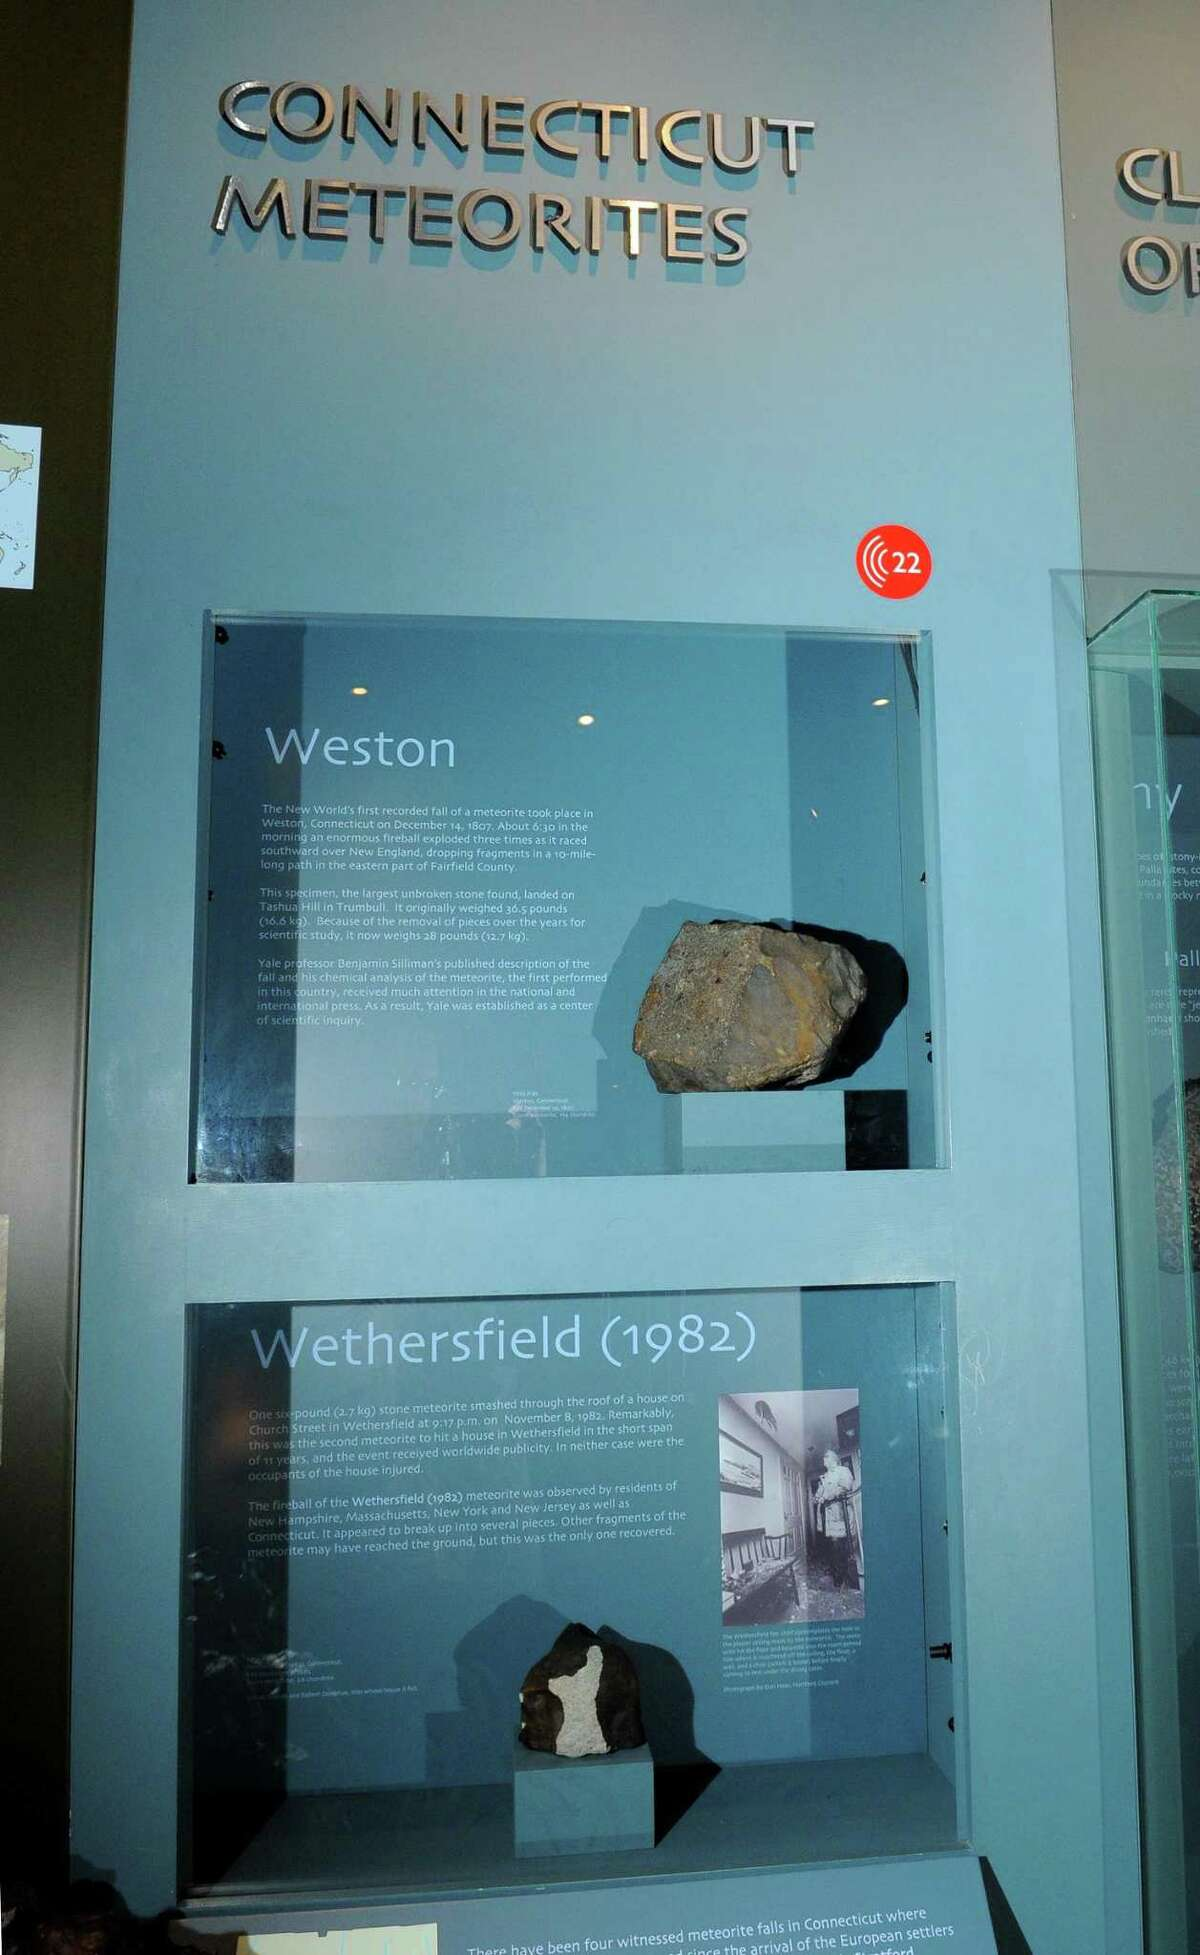 A view of the Weston Meteorite, at top, along with the other Connecticut meteor on display at the Yale Peabody Museum of Natural History in New Haven, Conn., on Wednesday Dec. 6, 2017.